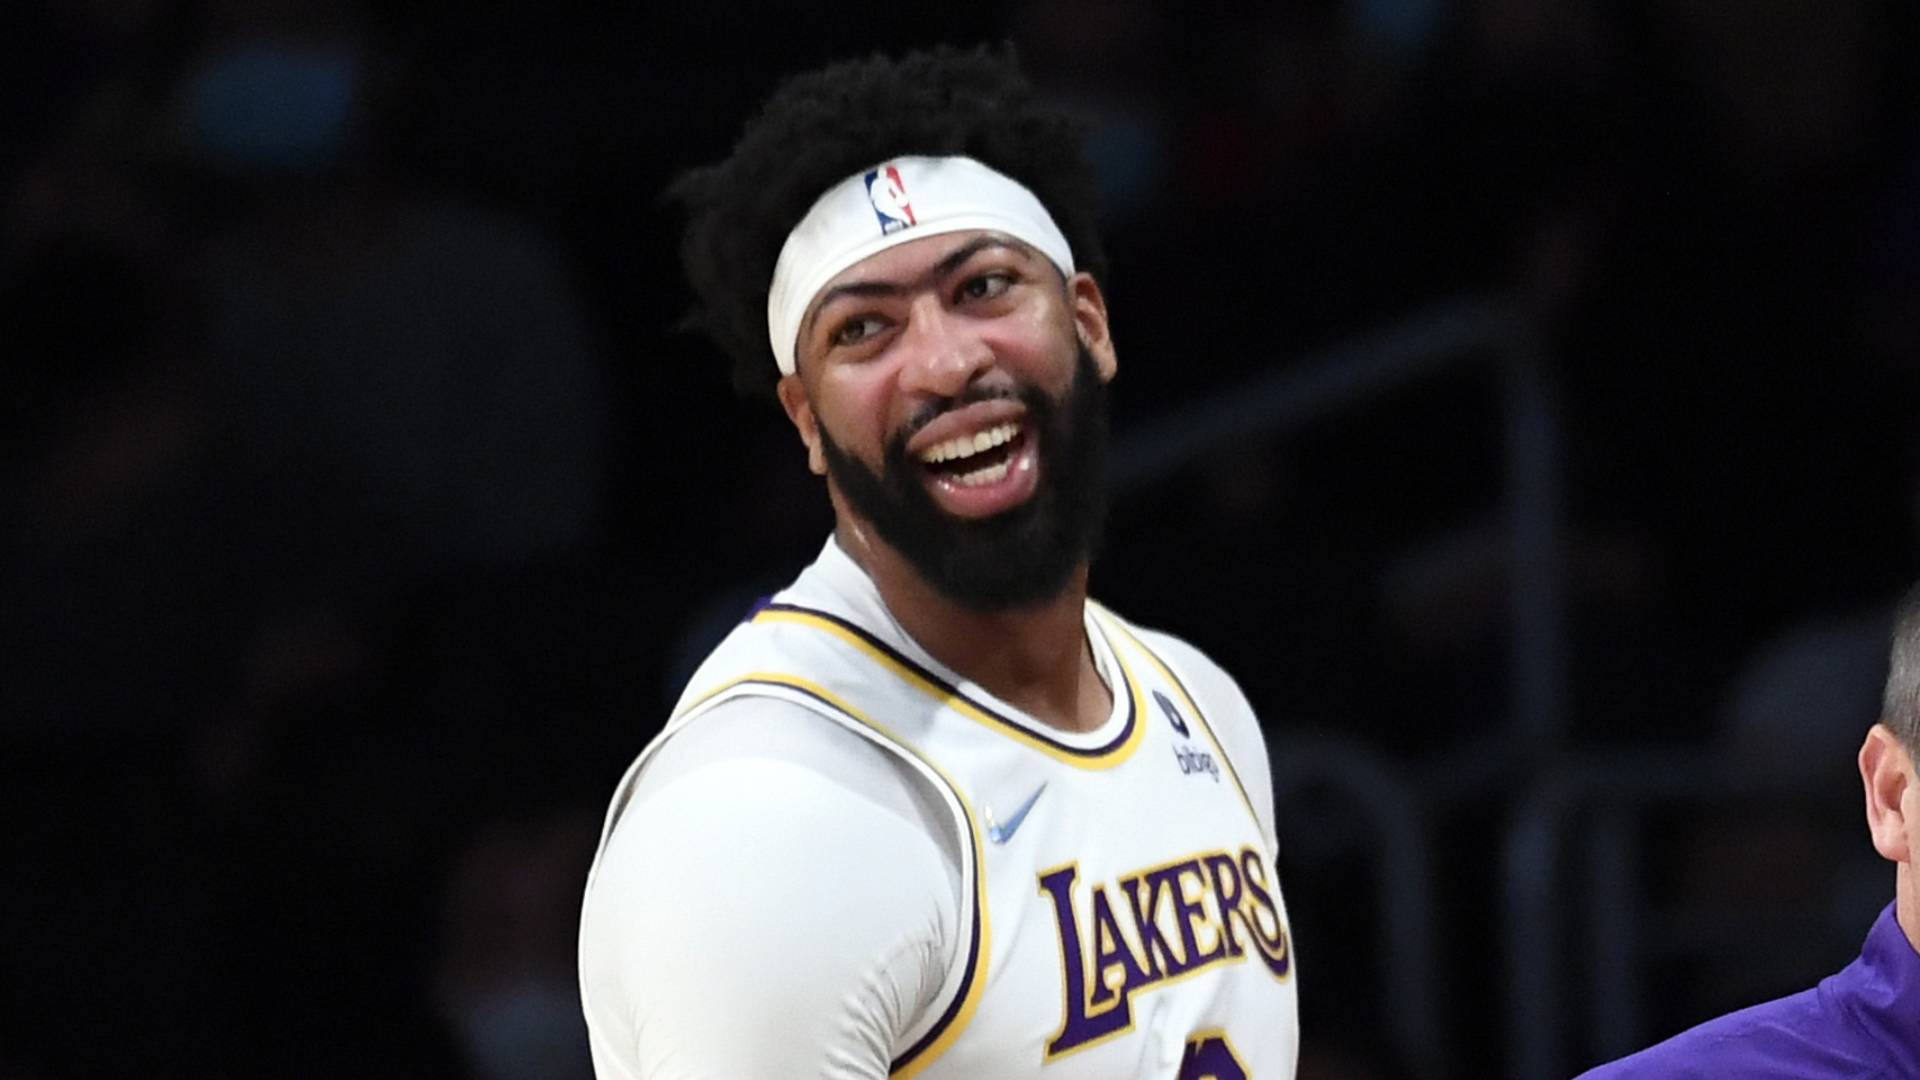 New-look Lakers championship hopes rest on bounce-back year from Anthony Davis